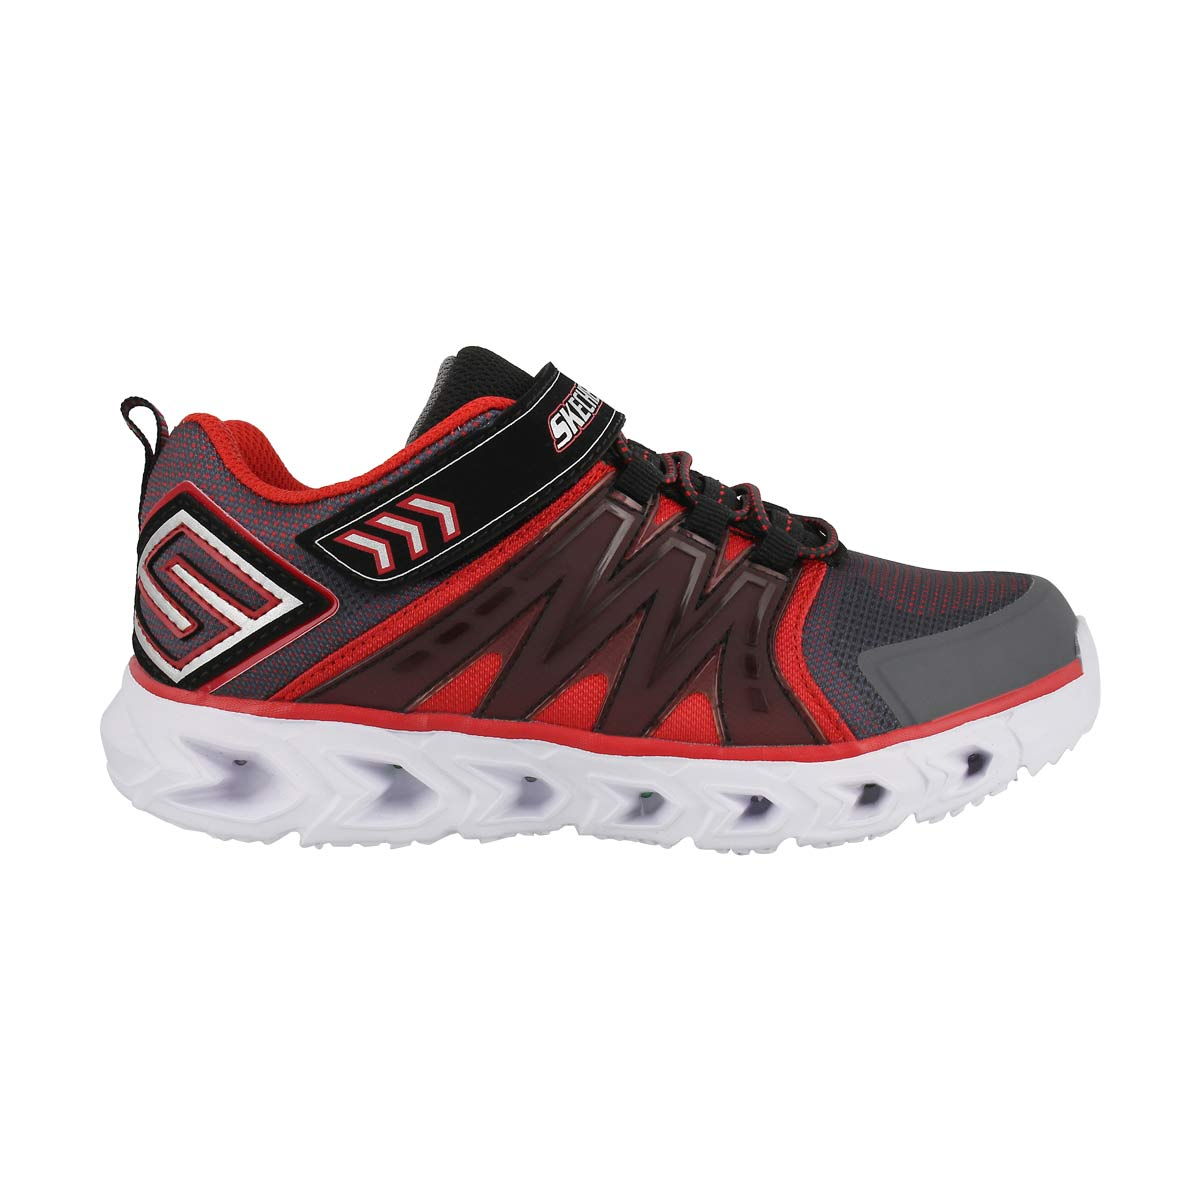 Bys HypnoFlash2.0 char/red light up snkr